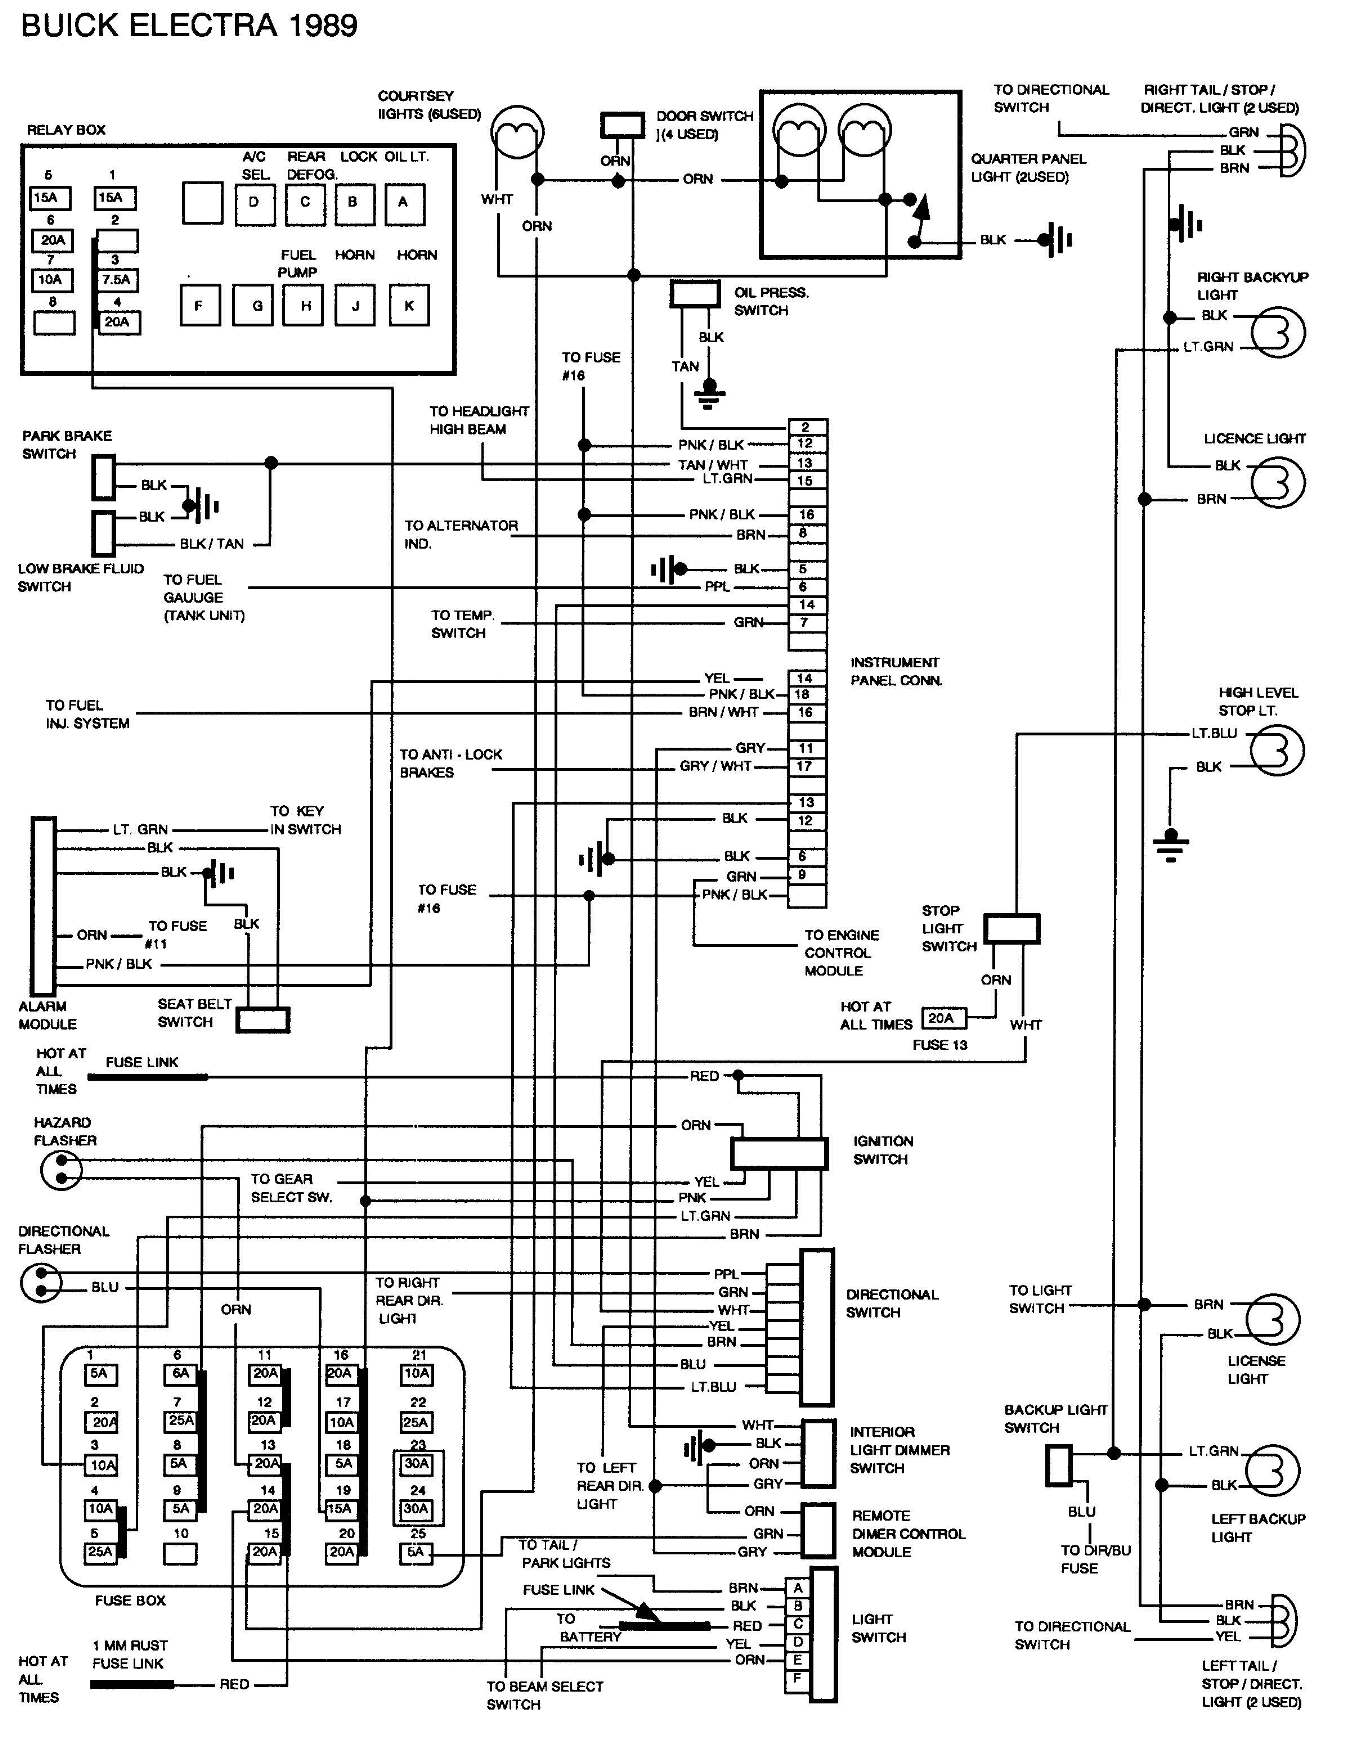 [DIAGRAM_5FD]  DIAGRAM] 2007 Buick Rendezvous Wiring Diagram FULL Version HD Quality Wiring  Diagram - CARRYBOYPHIL.K-DANSE.FR | Buick Rendezvous Radio Wiring Diagram |  | K-danse.fr